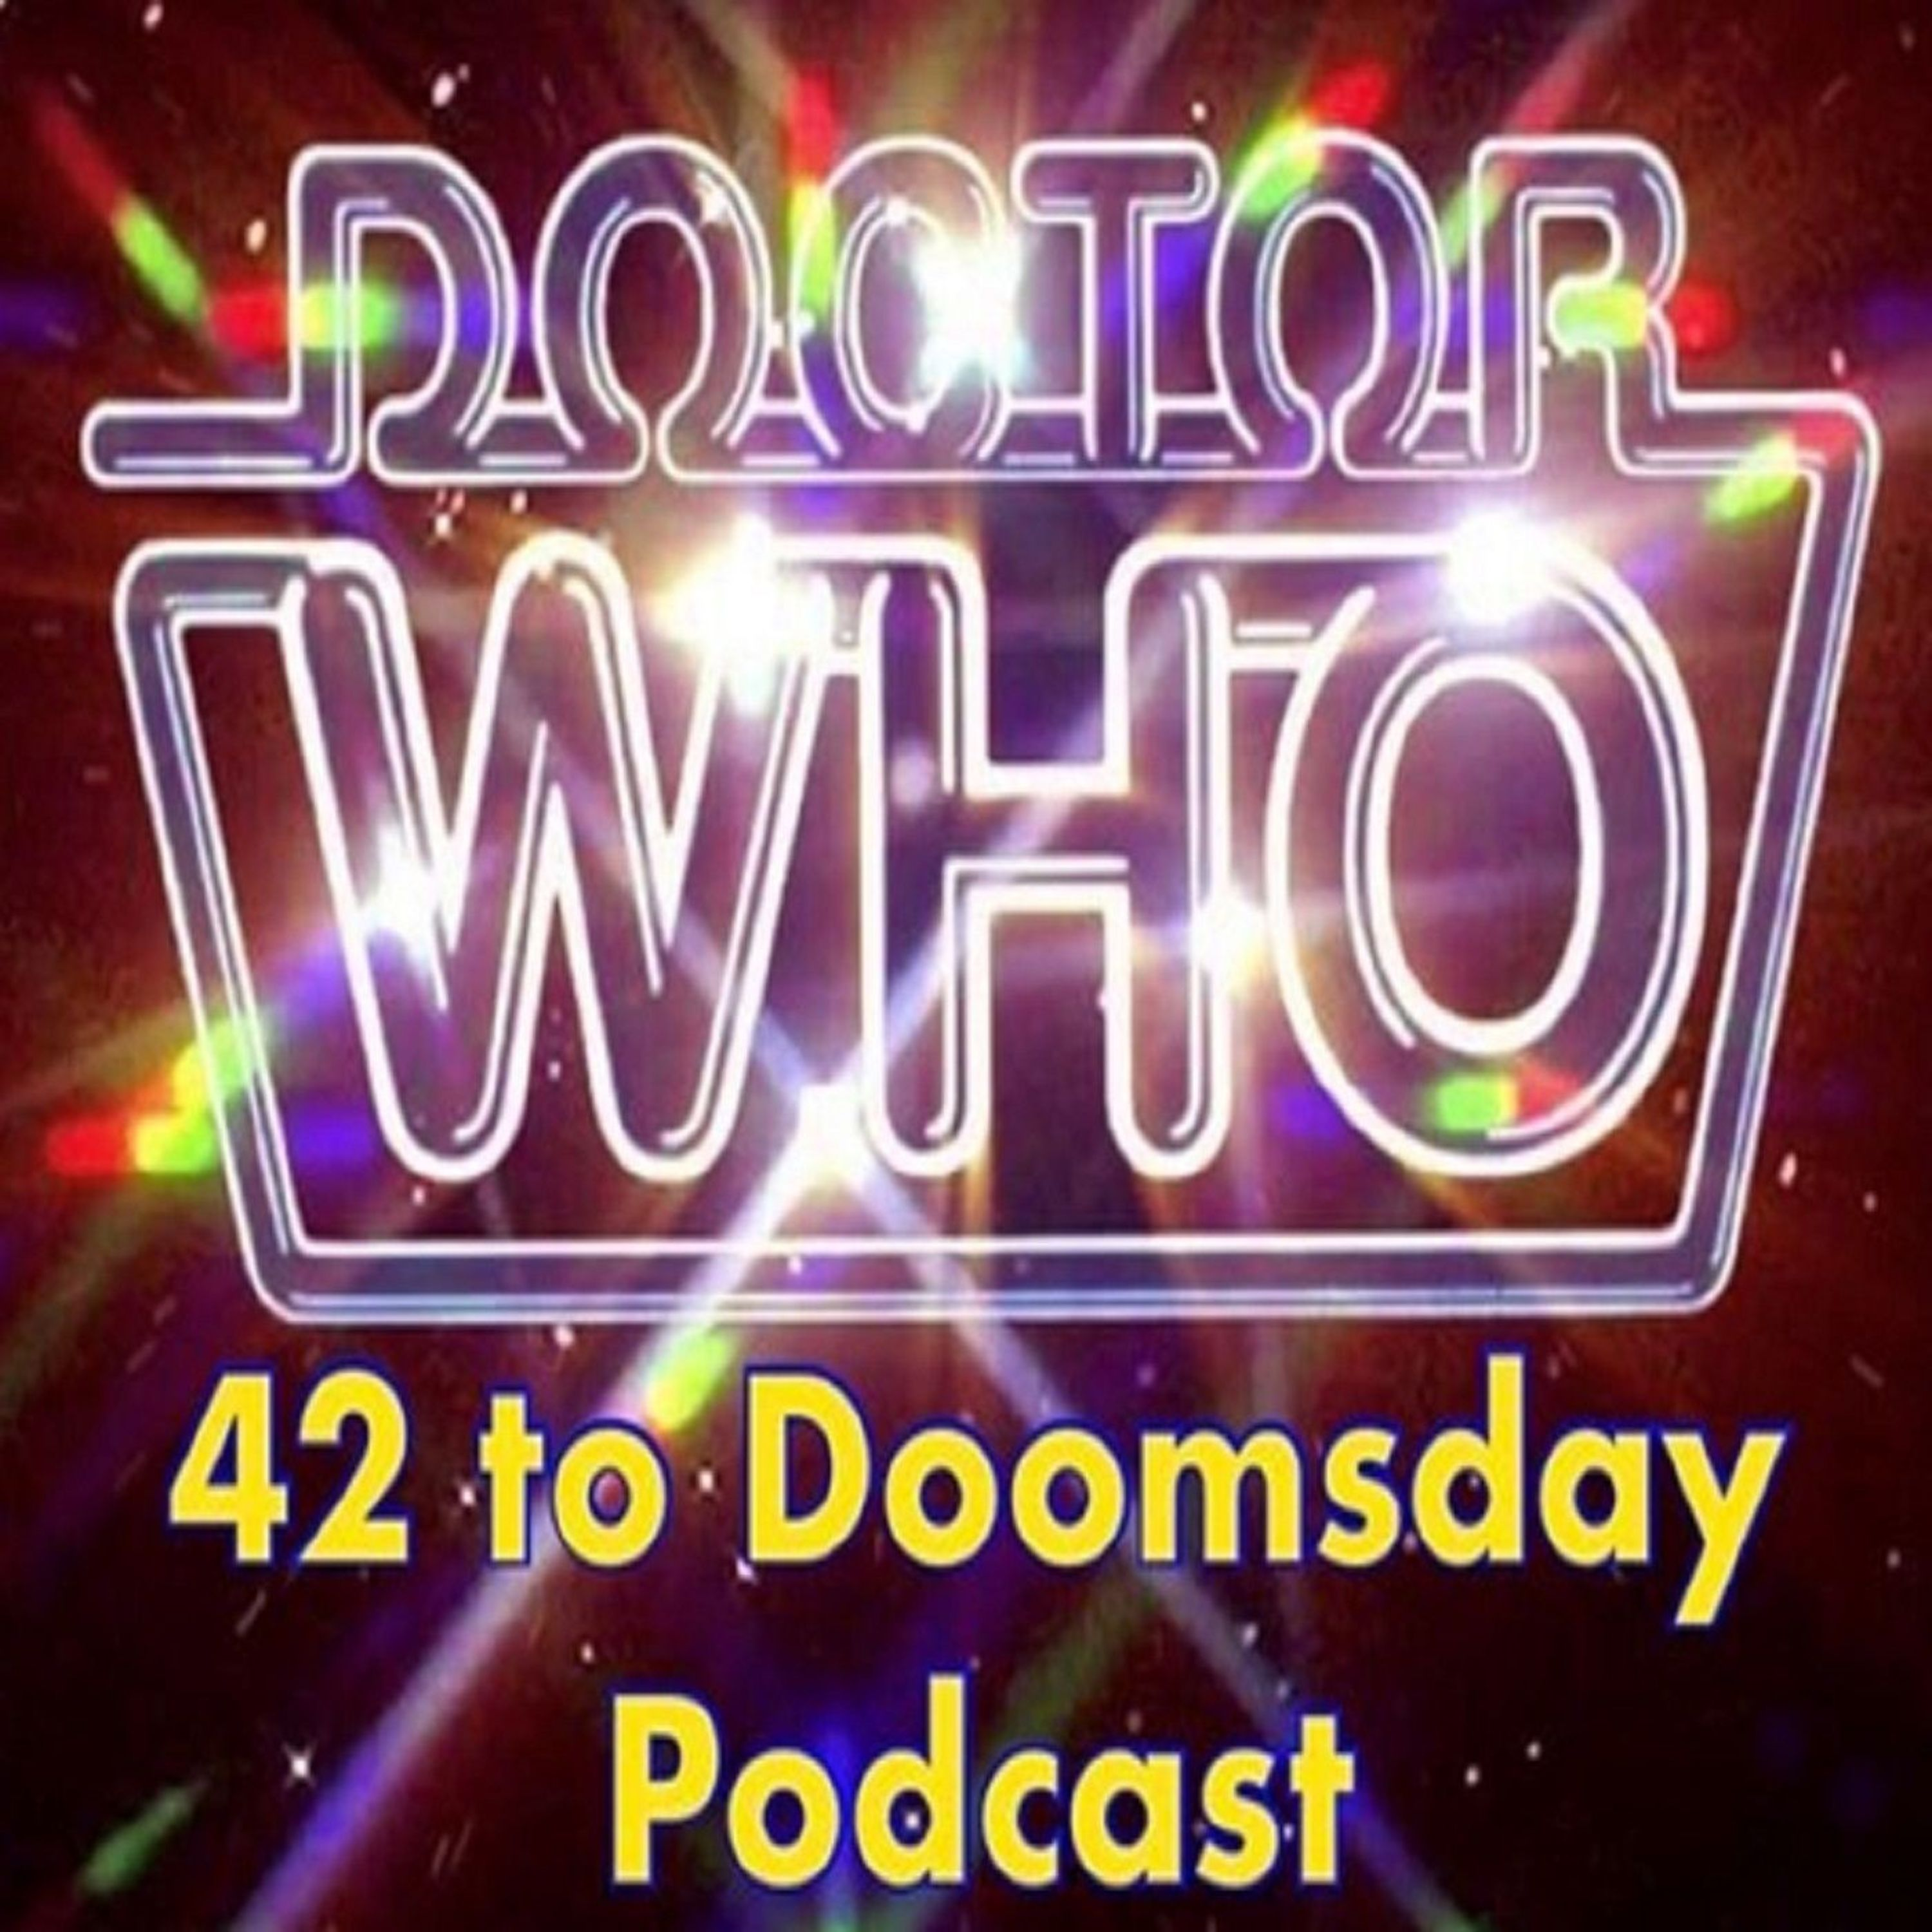 <![CDATA[Doctor Who: 42 To Doomsday]]>